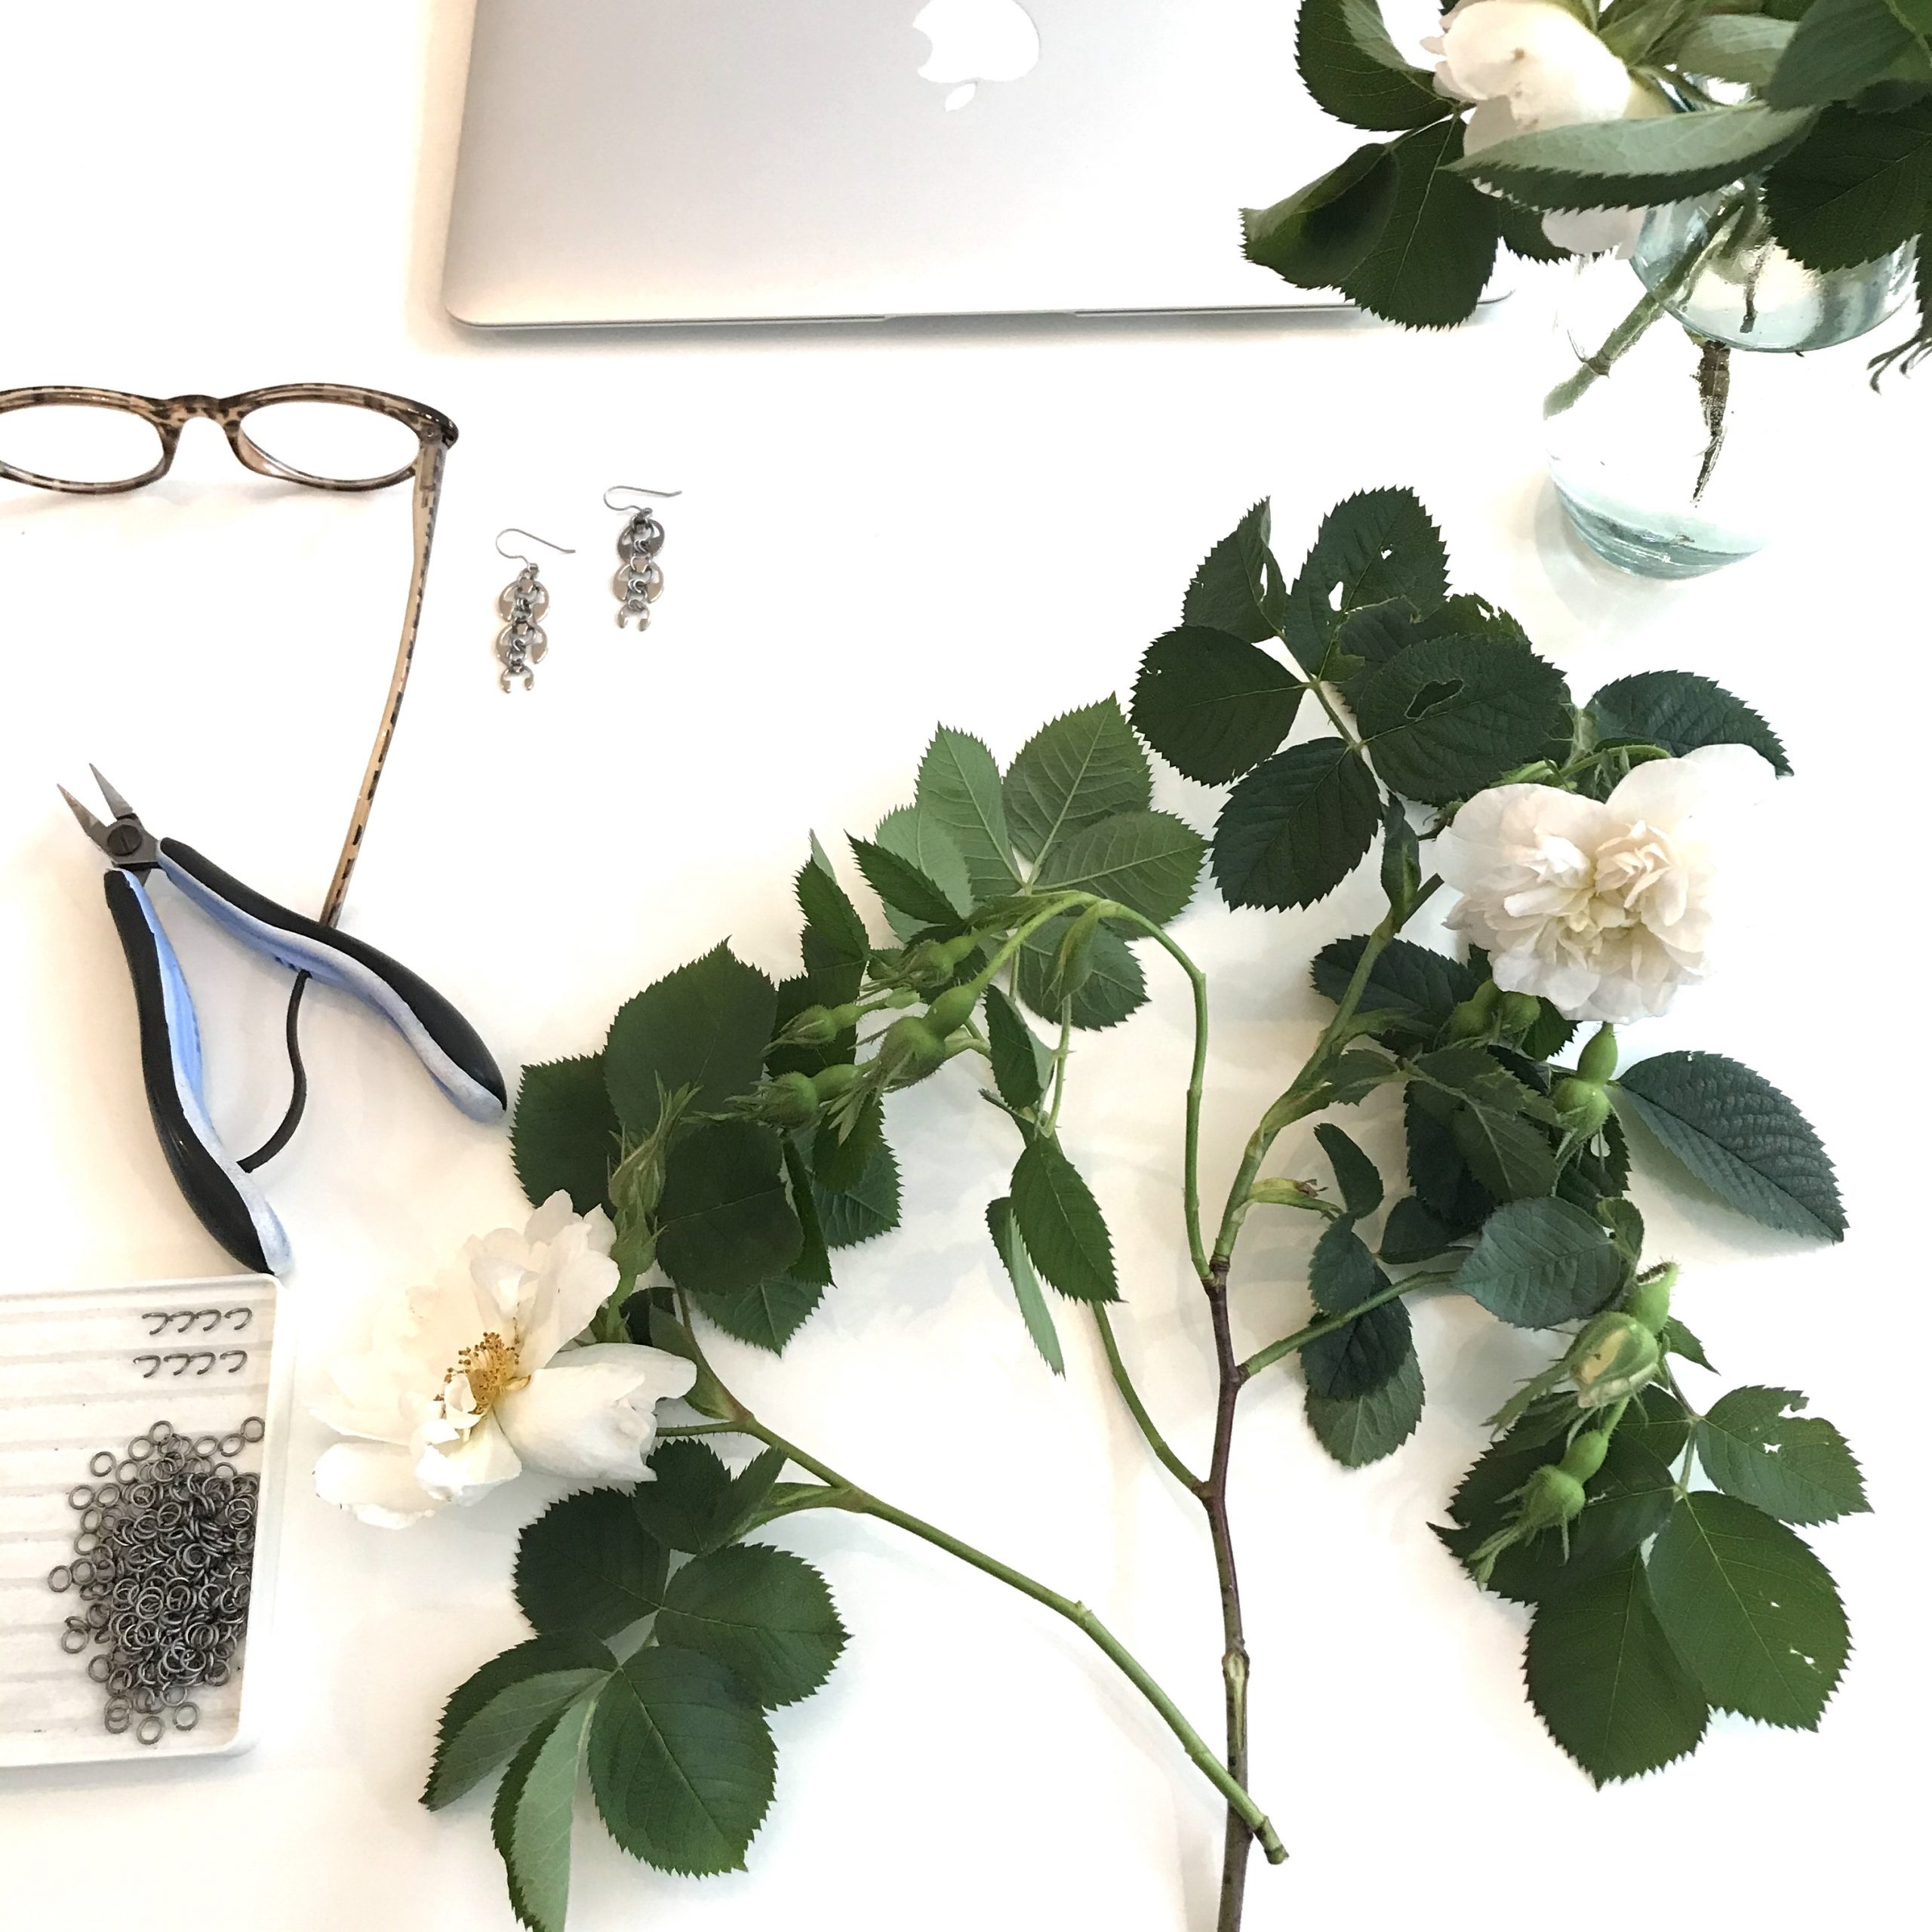 Rosa alba 'Semi-plena' on a desk with laptop, reading glasses, pliers, chainmail rings, and Wraptillion's Long Fuchsia Earrings.